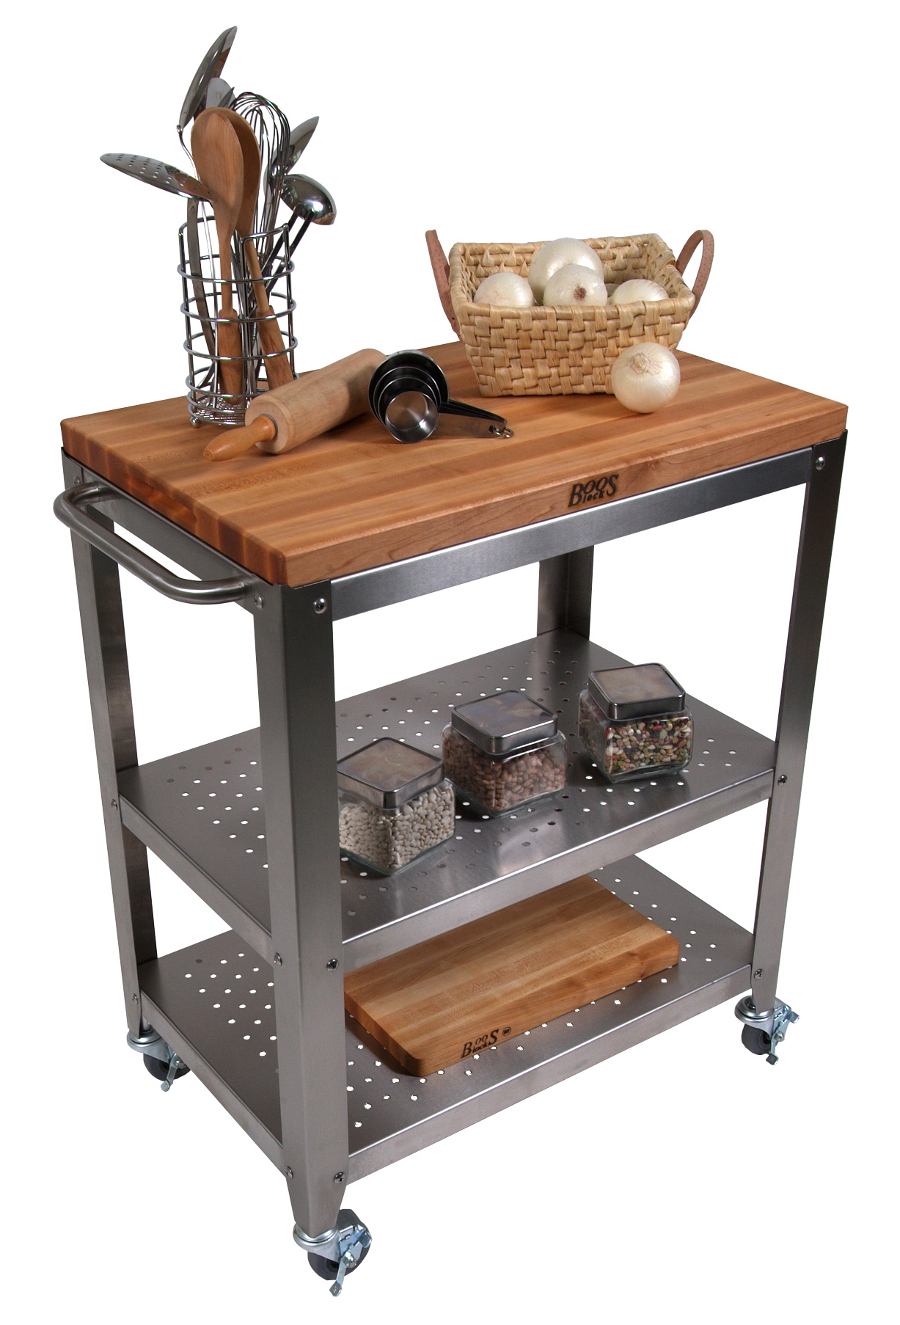 kitchen islands and carts butcher block kitchen table Boos Cucina Culinarte Cart Removable Maple Butcher Block